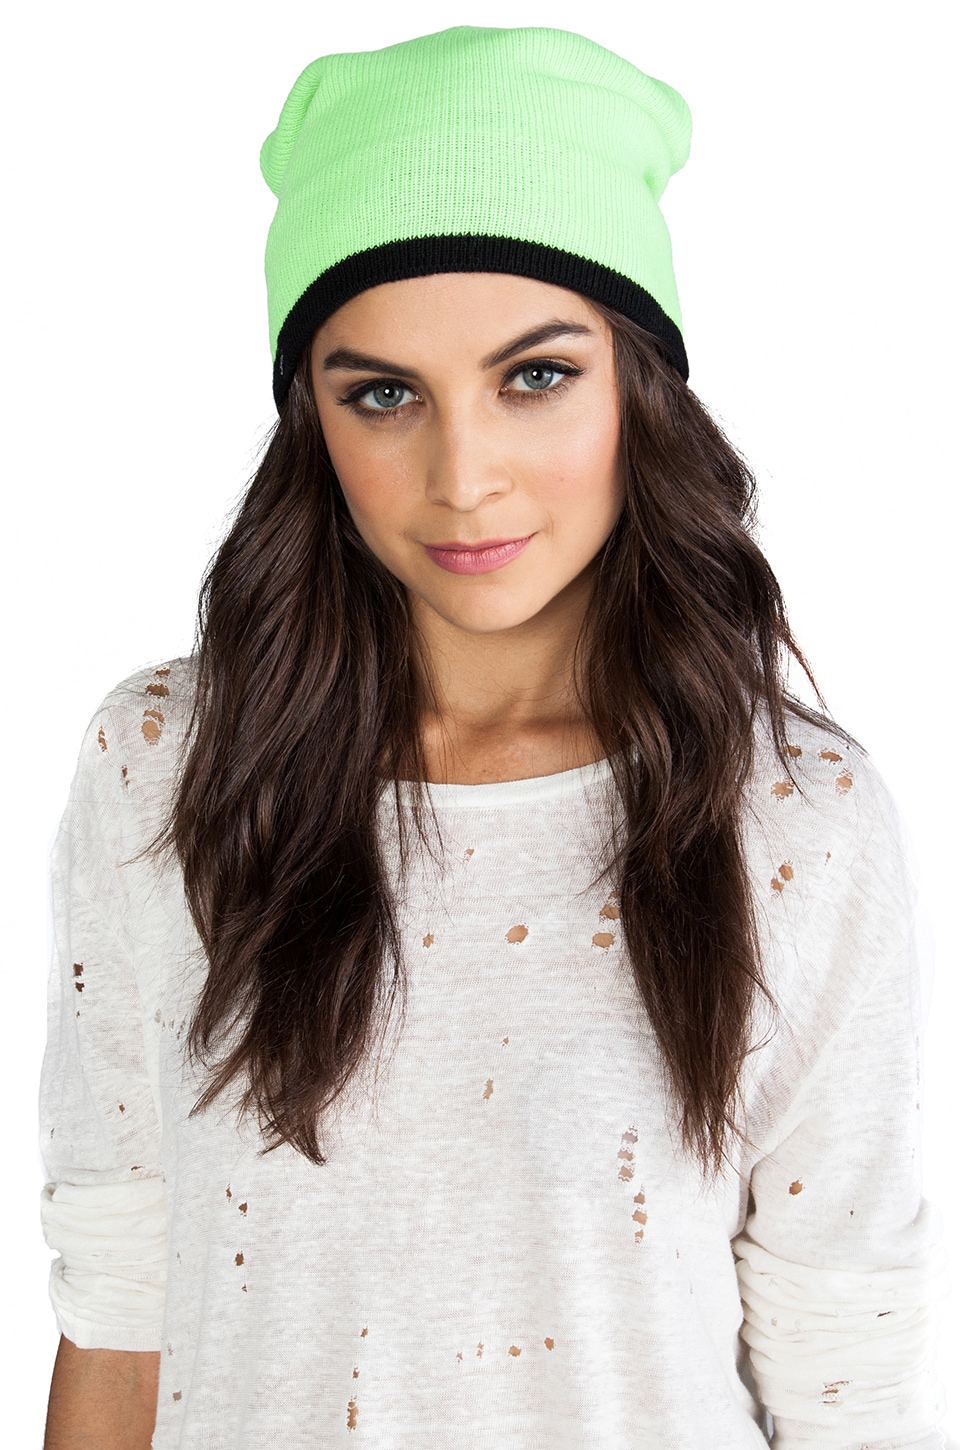 Plush Two-Toned Barca Hat in Lime/Black